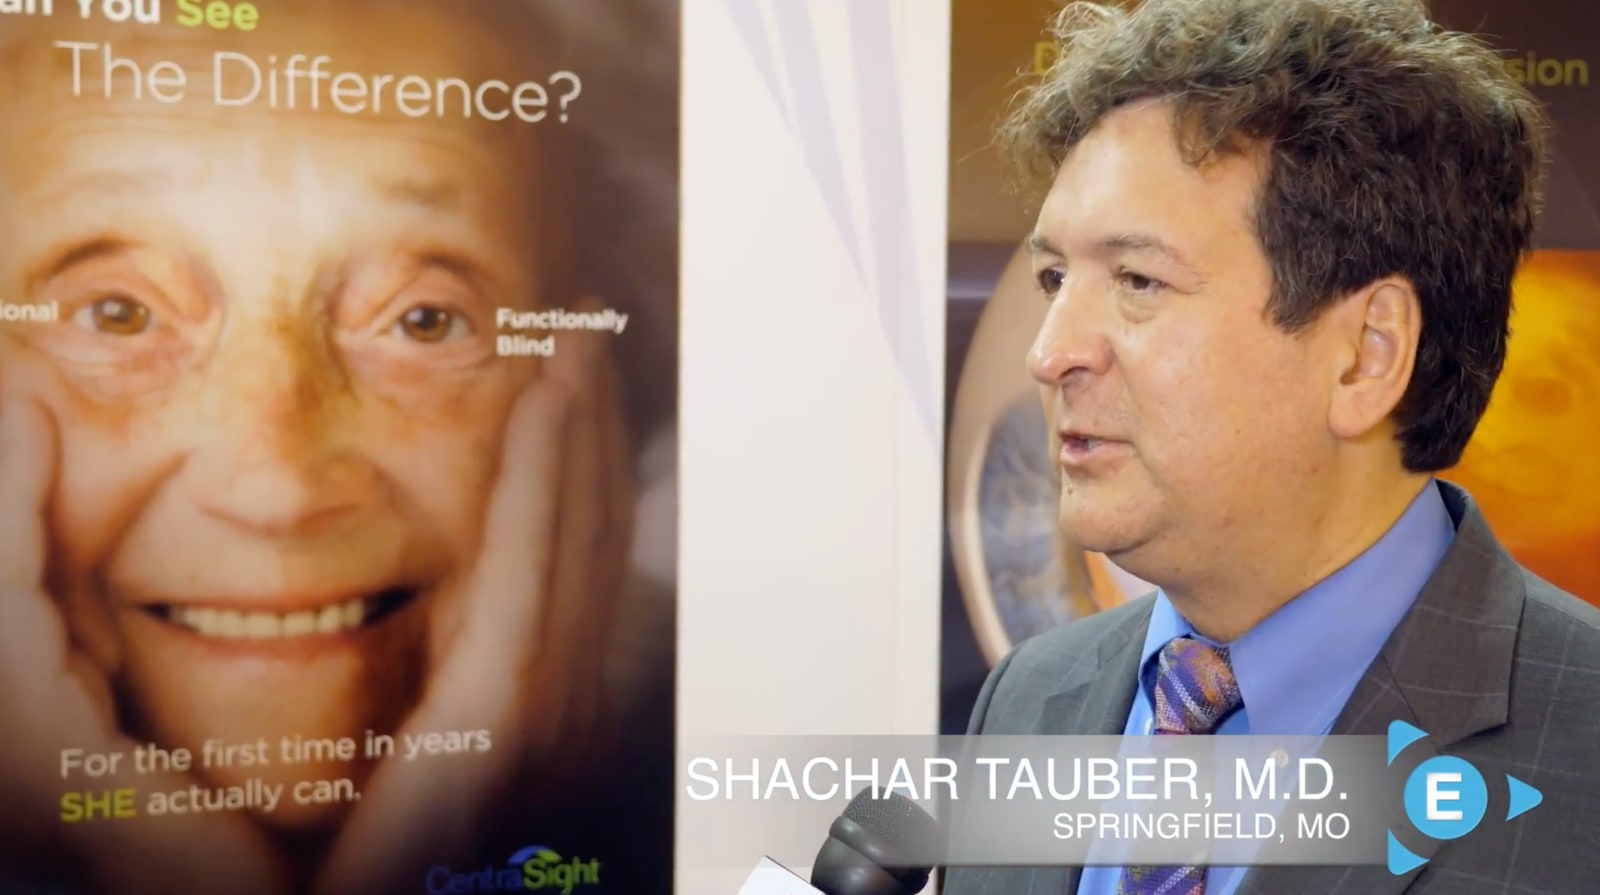 Dr. Shachar Tauber, M.D., Discusses how Caregivers Benefit from the Telescope Implant Procedure